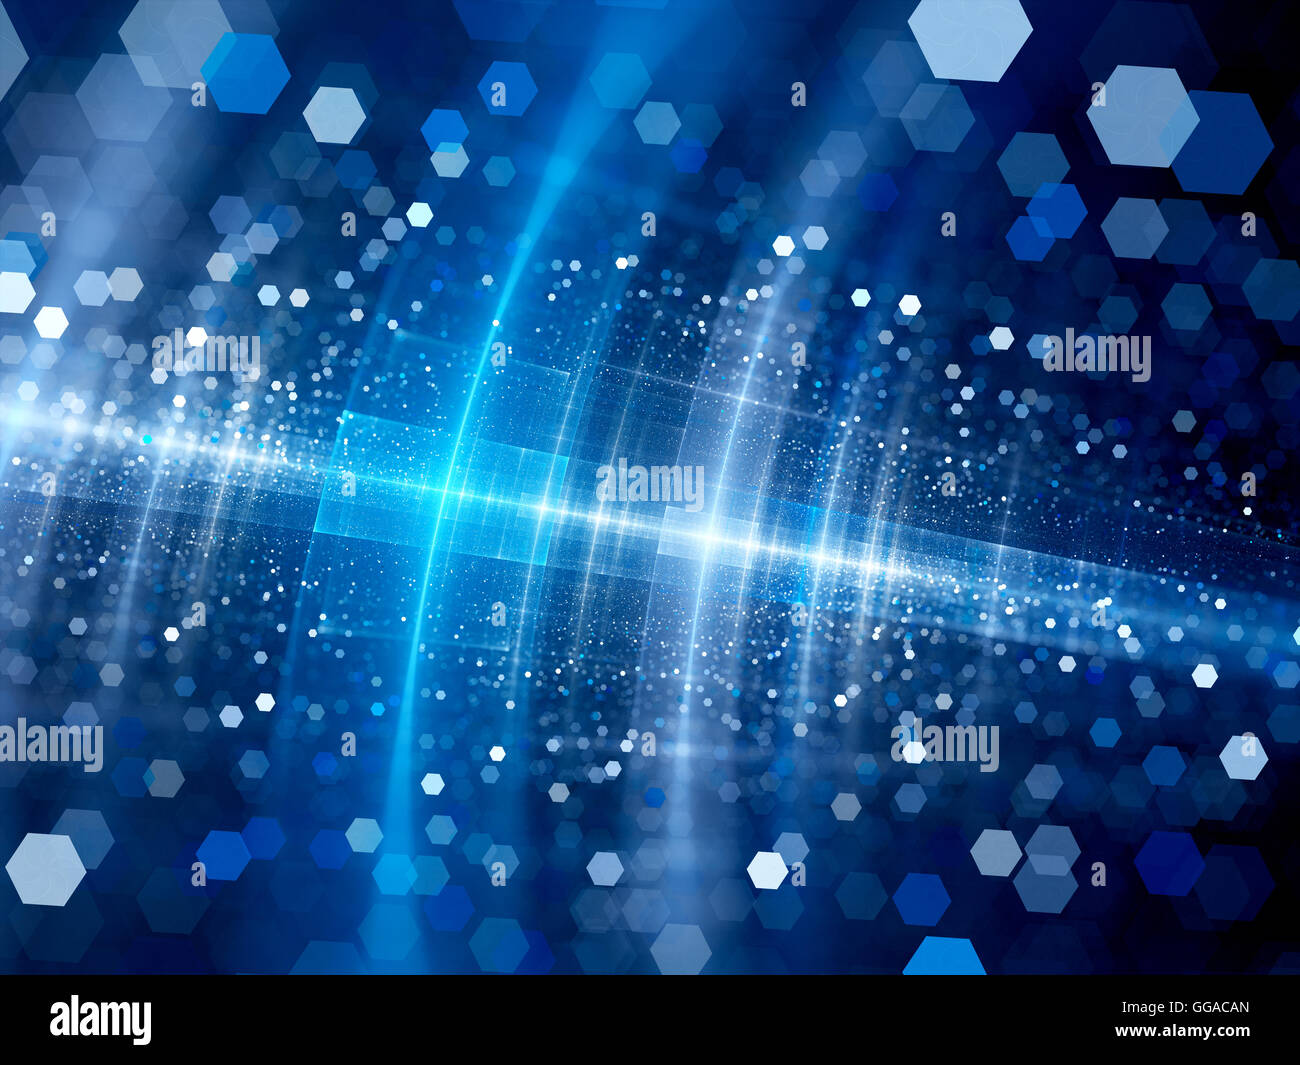 Blue glowing big data system with particles in space, computer generated abstract background - Stock Image